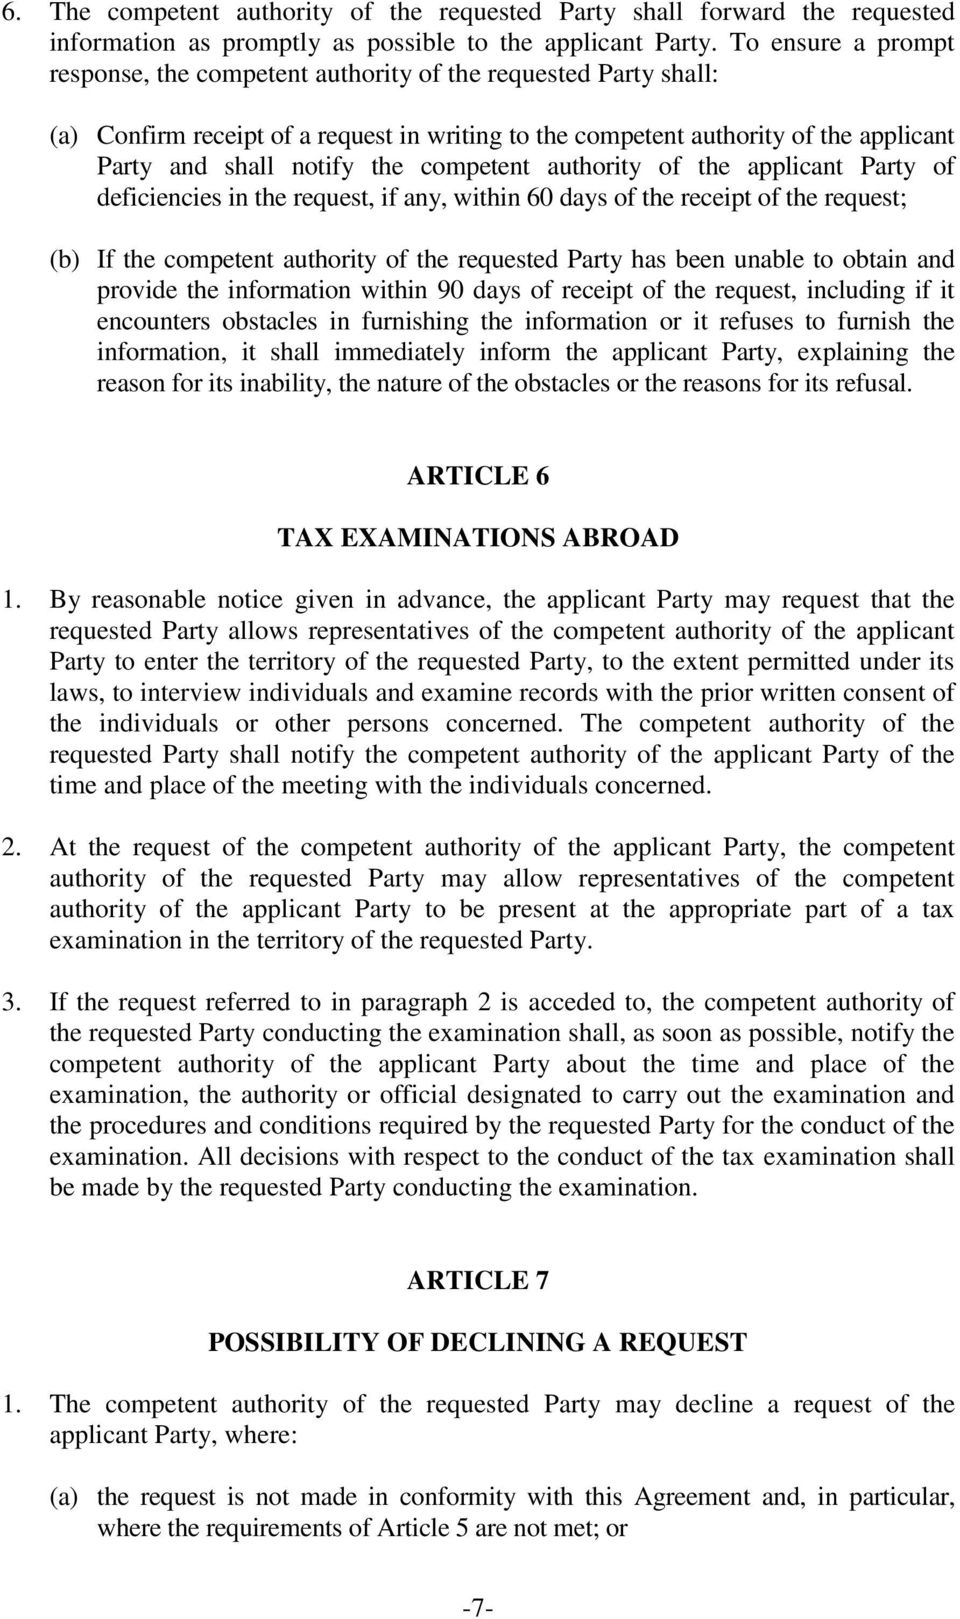 competent authority of the applicant Party of deficiencies in the request, if any, within 60 days of the receipt of the request; (b) If the competent authority of the requested Party has been unable